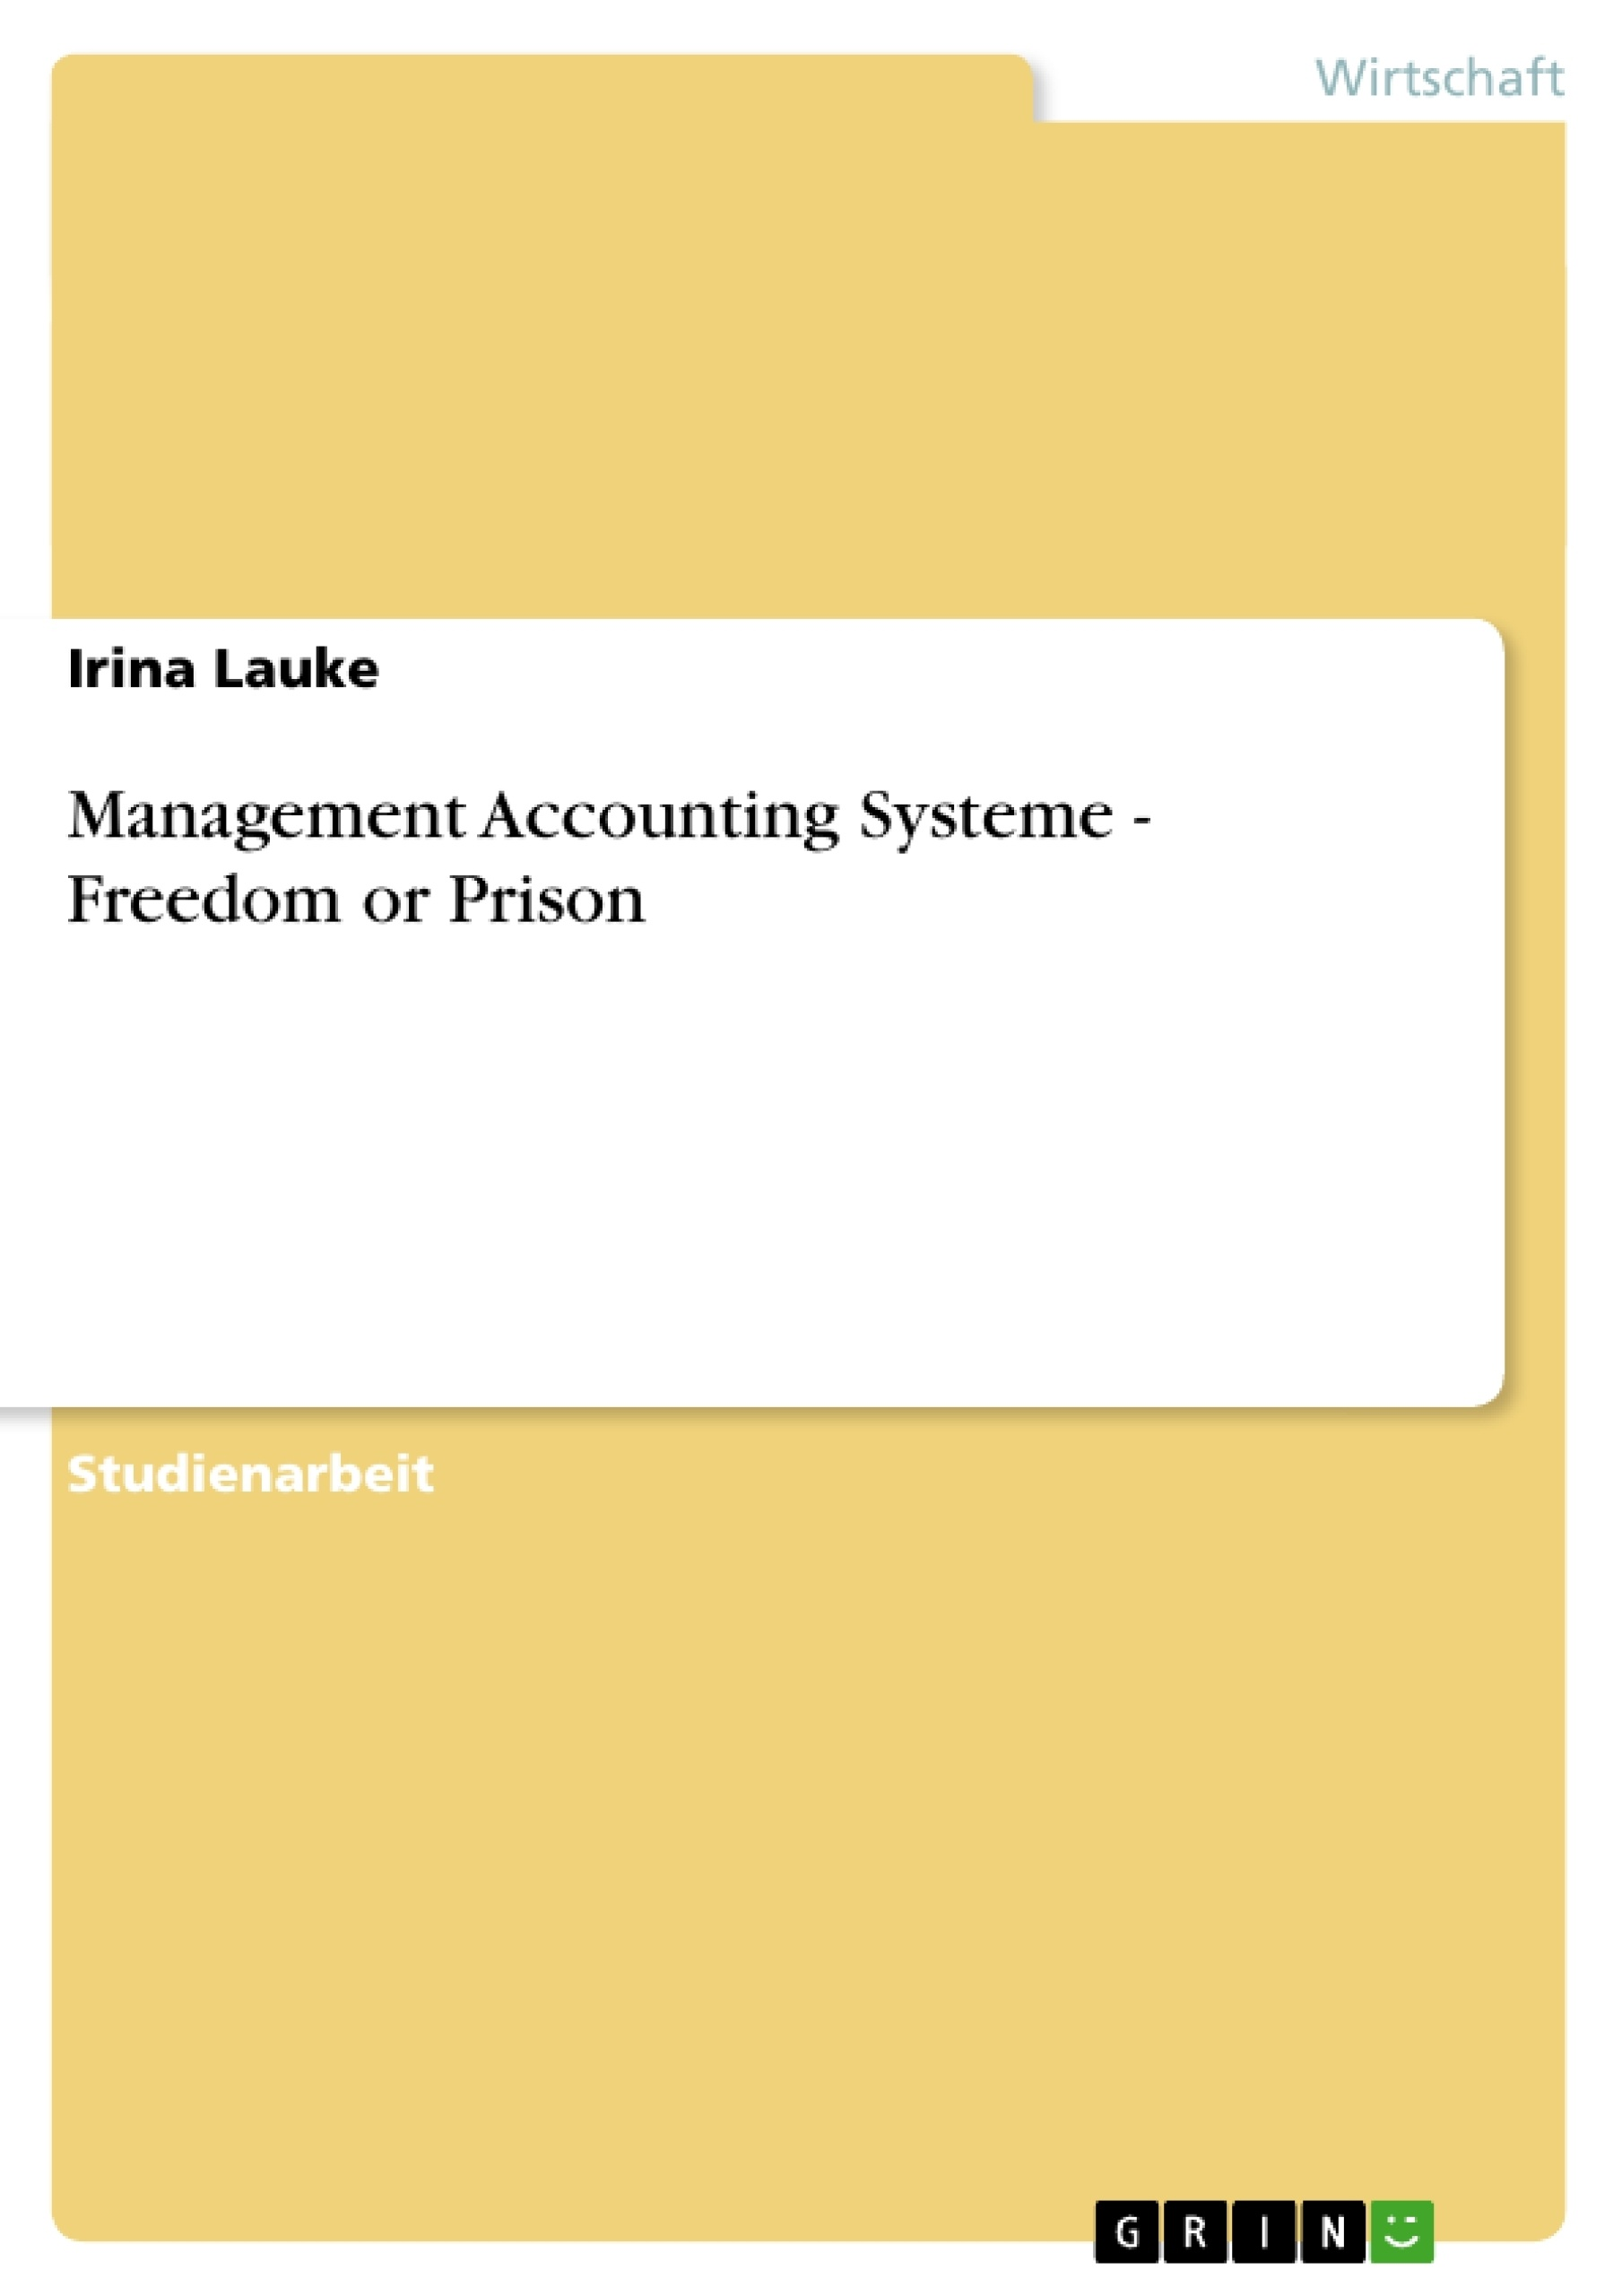 Titel: Management Accounting Systeme - Freedom or Prison